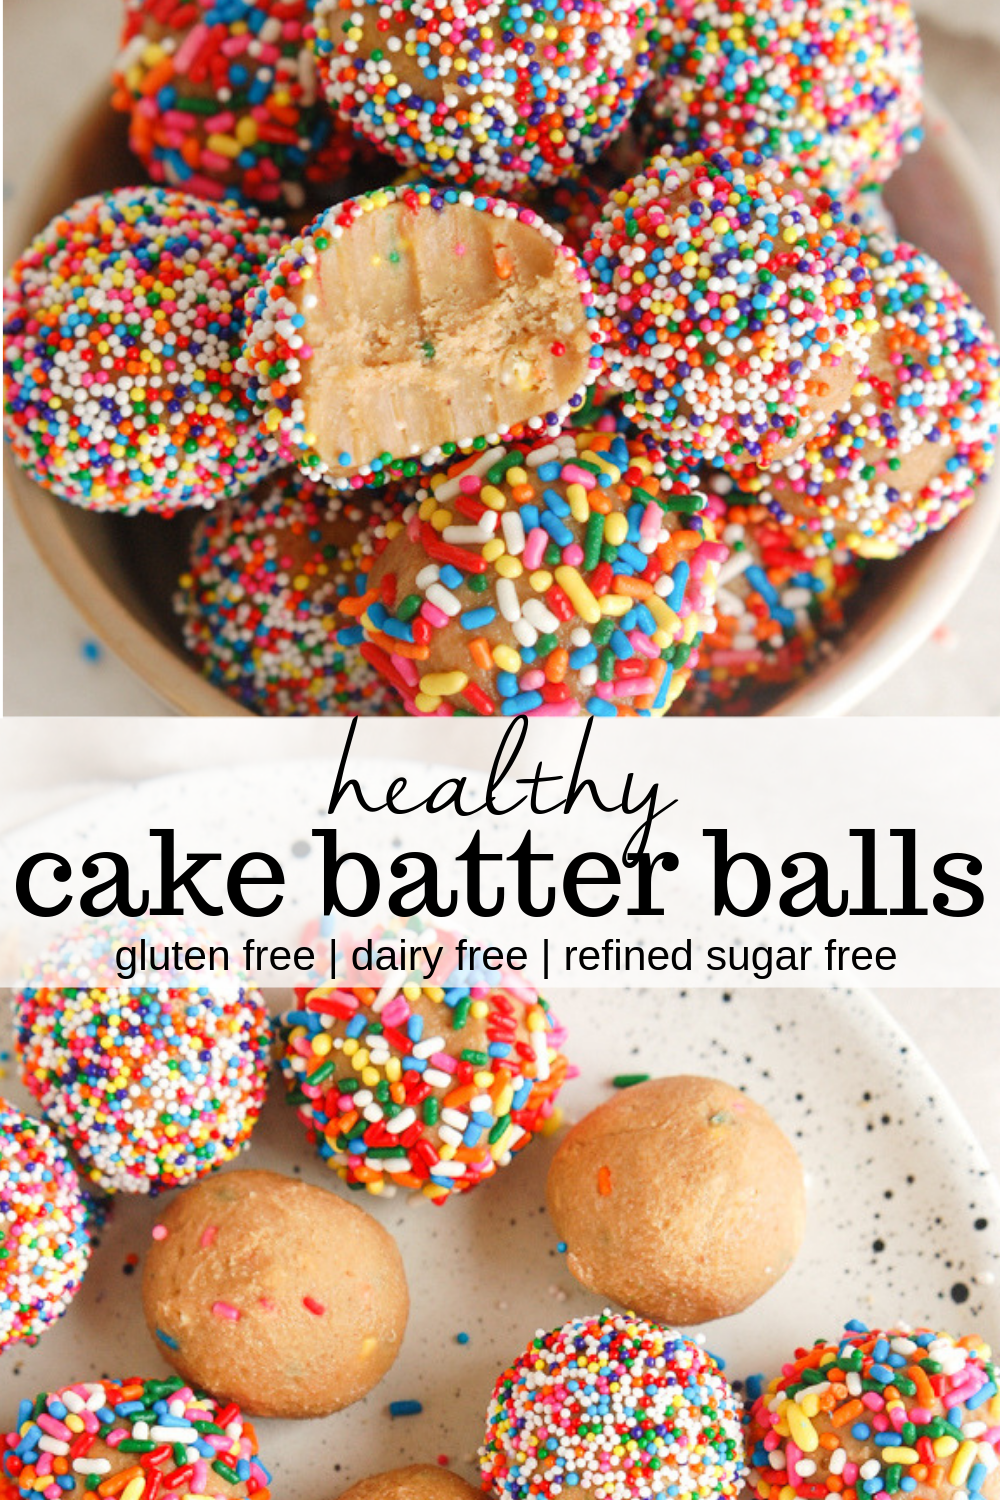 Looking for a healthy cake batter balls recipe that is completely gluten free, vegan